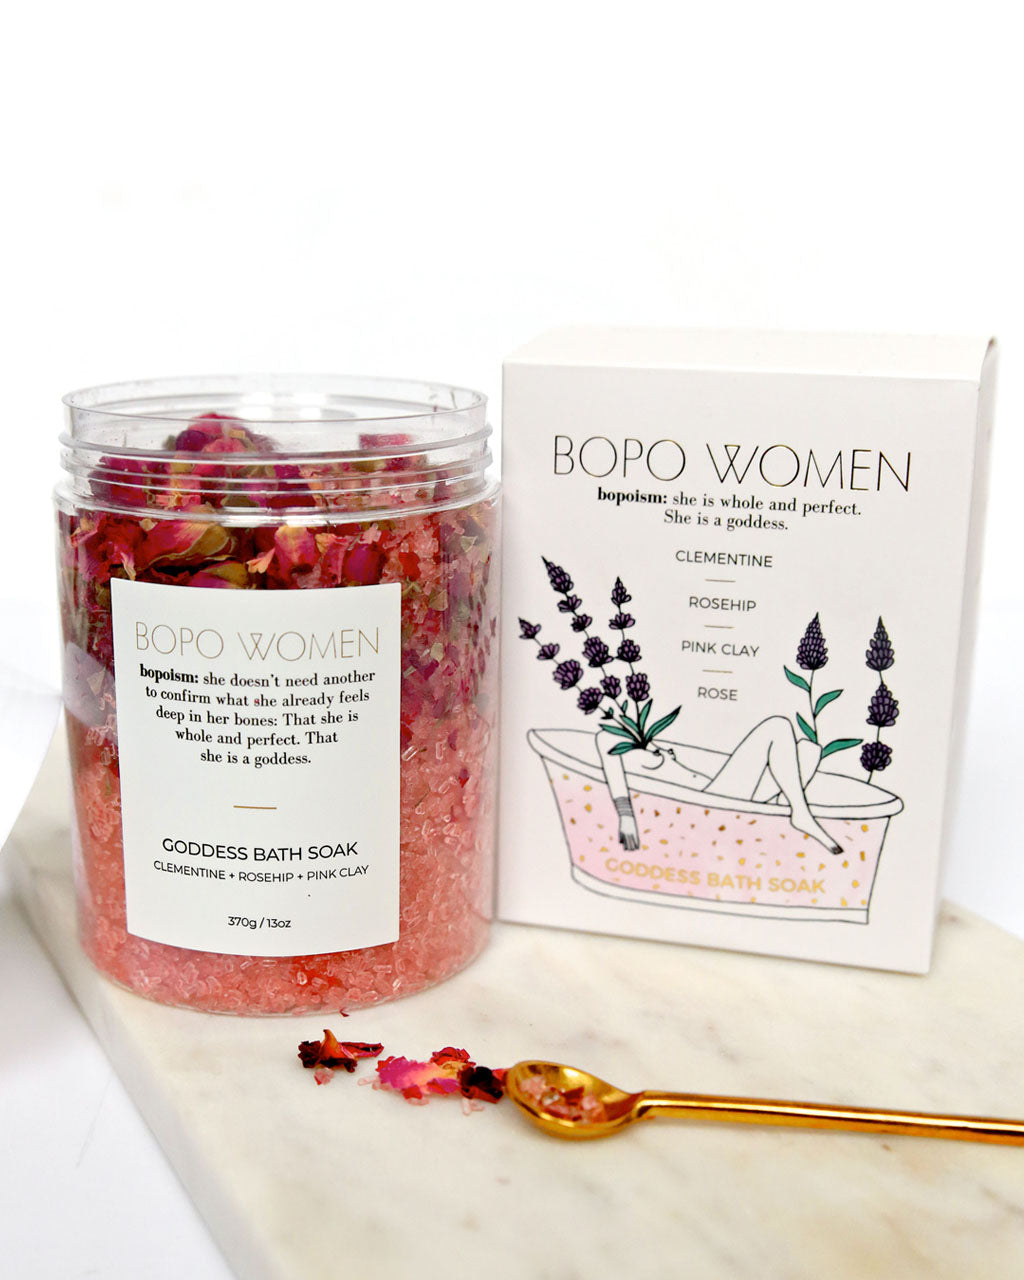 Bopo Goddess Bath Soak